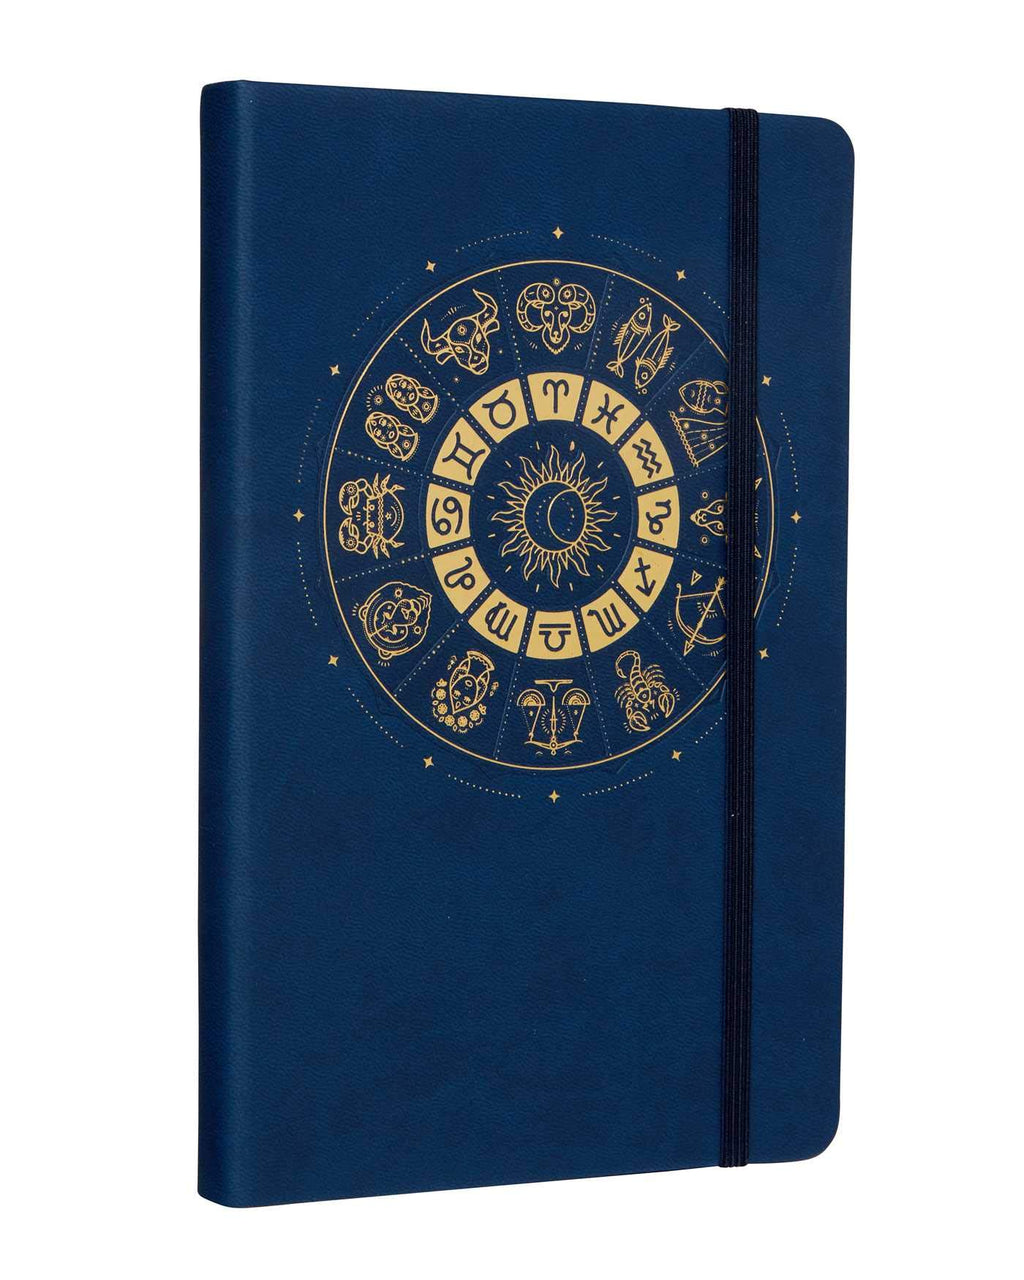 Twelve Signs of the Zodiac Journal